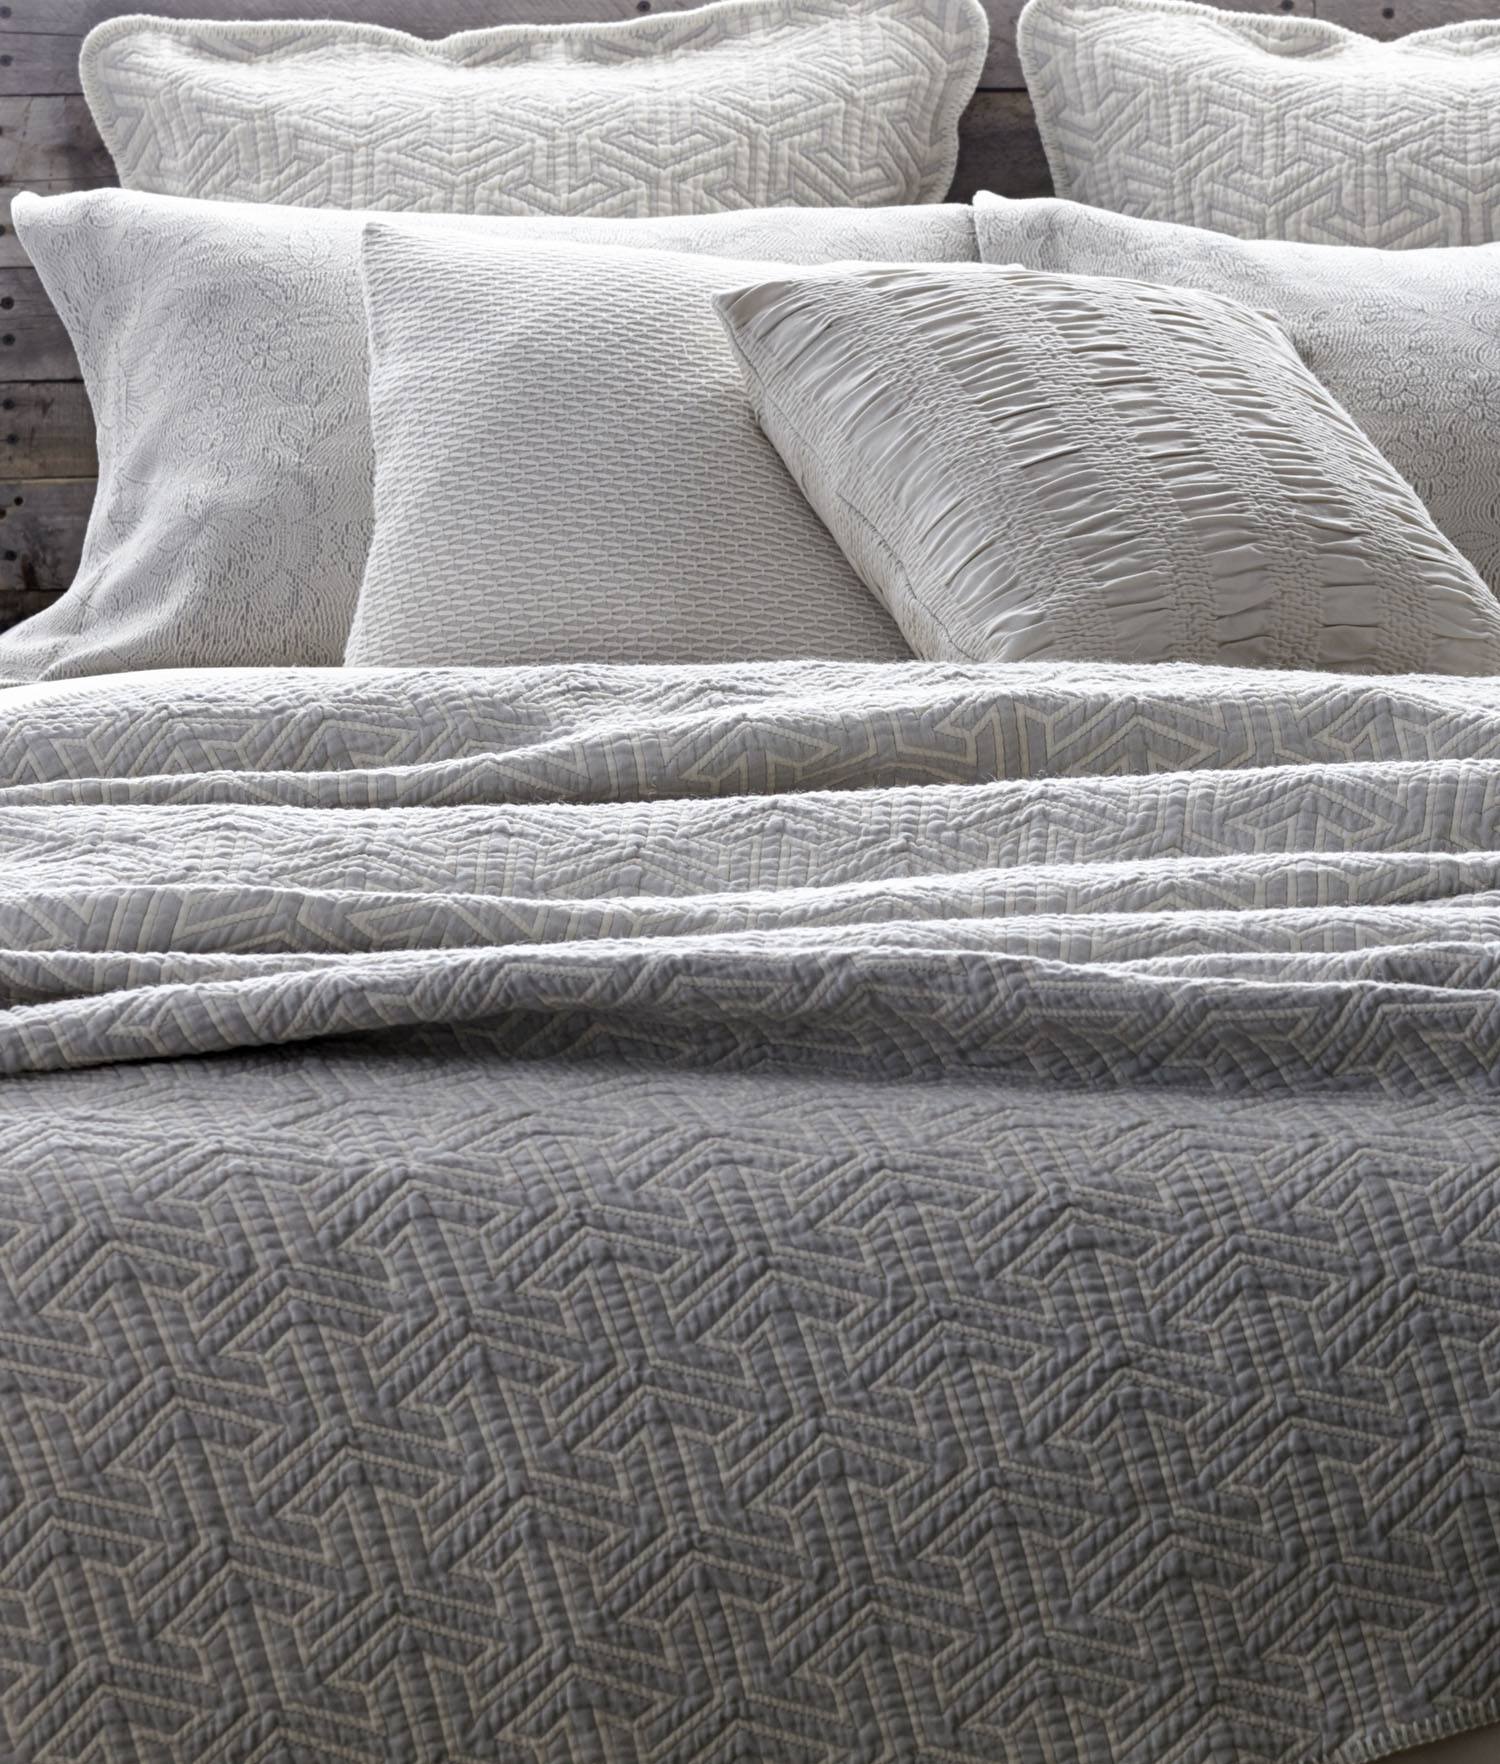 Delightful Arrows Matelassé Coverlet